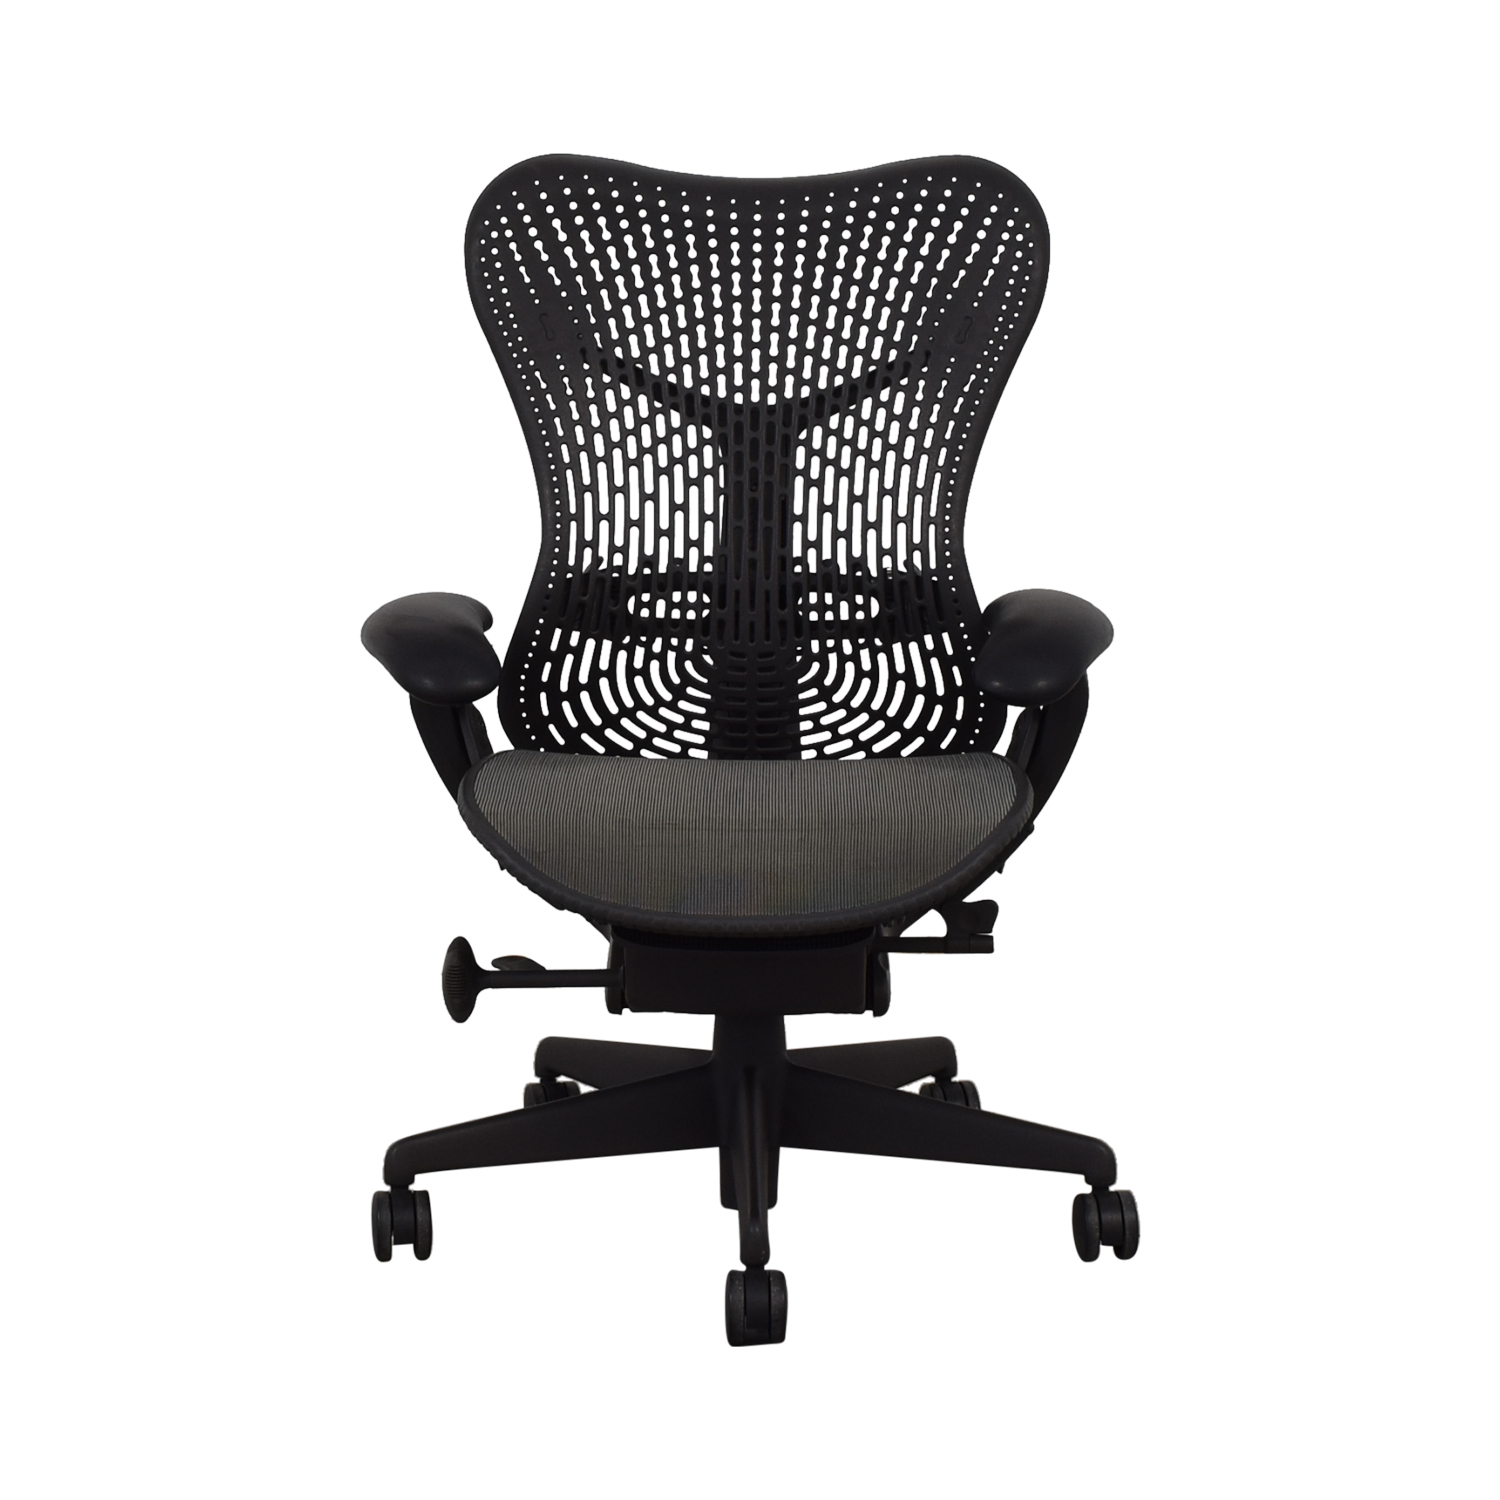 Herman Miller Herman Miller Ergonomic Office Chair